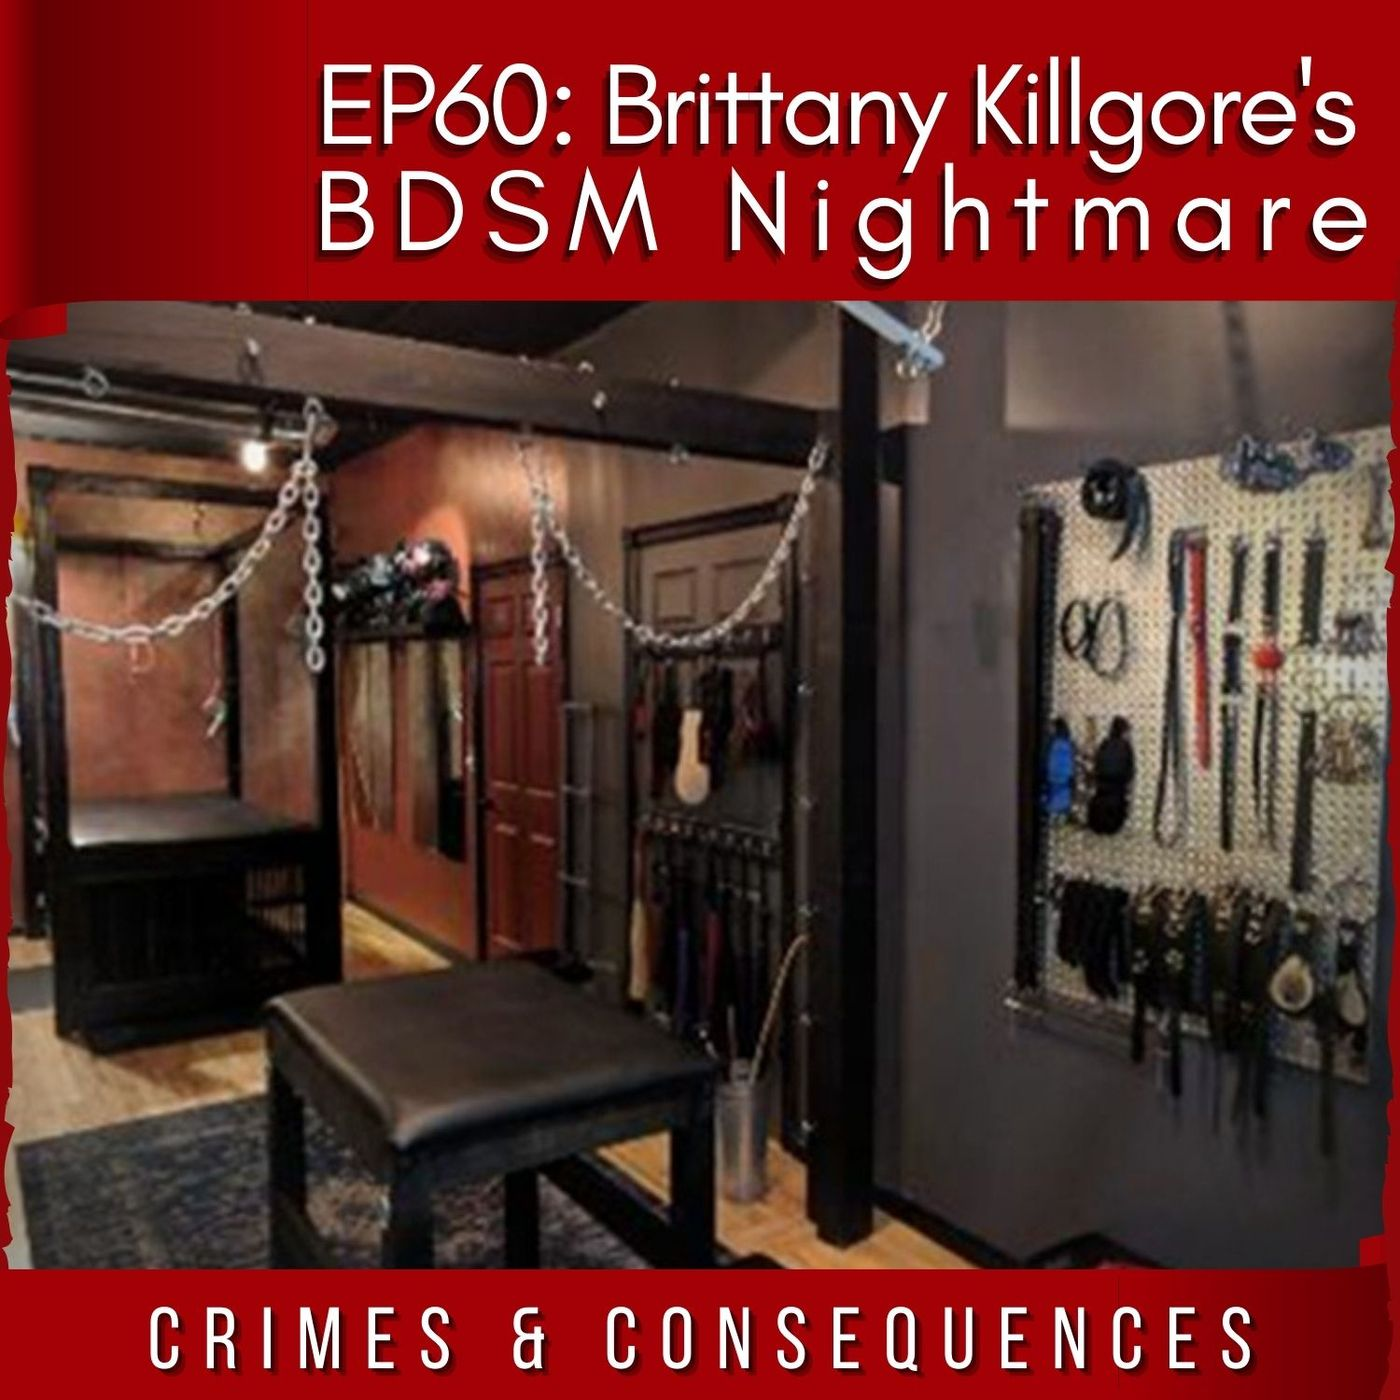 EP60: Brittany Killgore's BDSM Nightmare